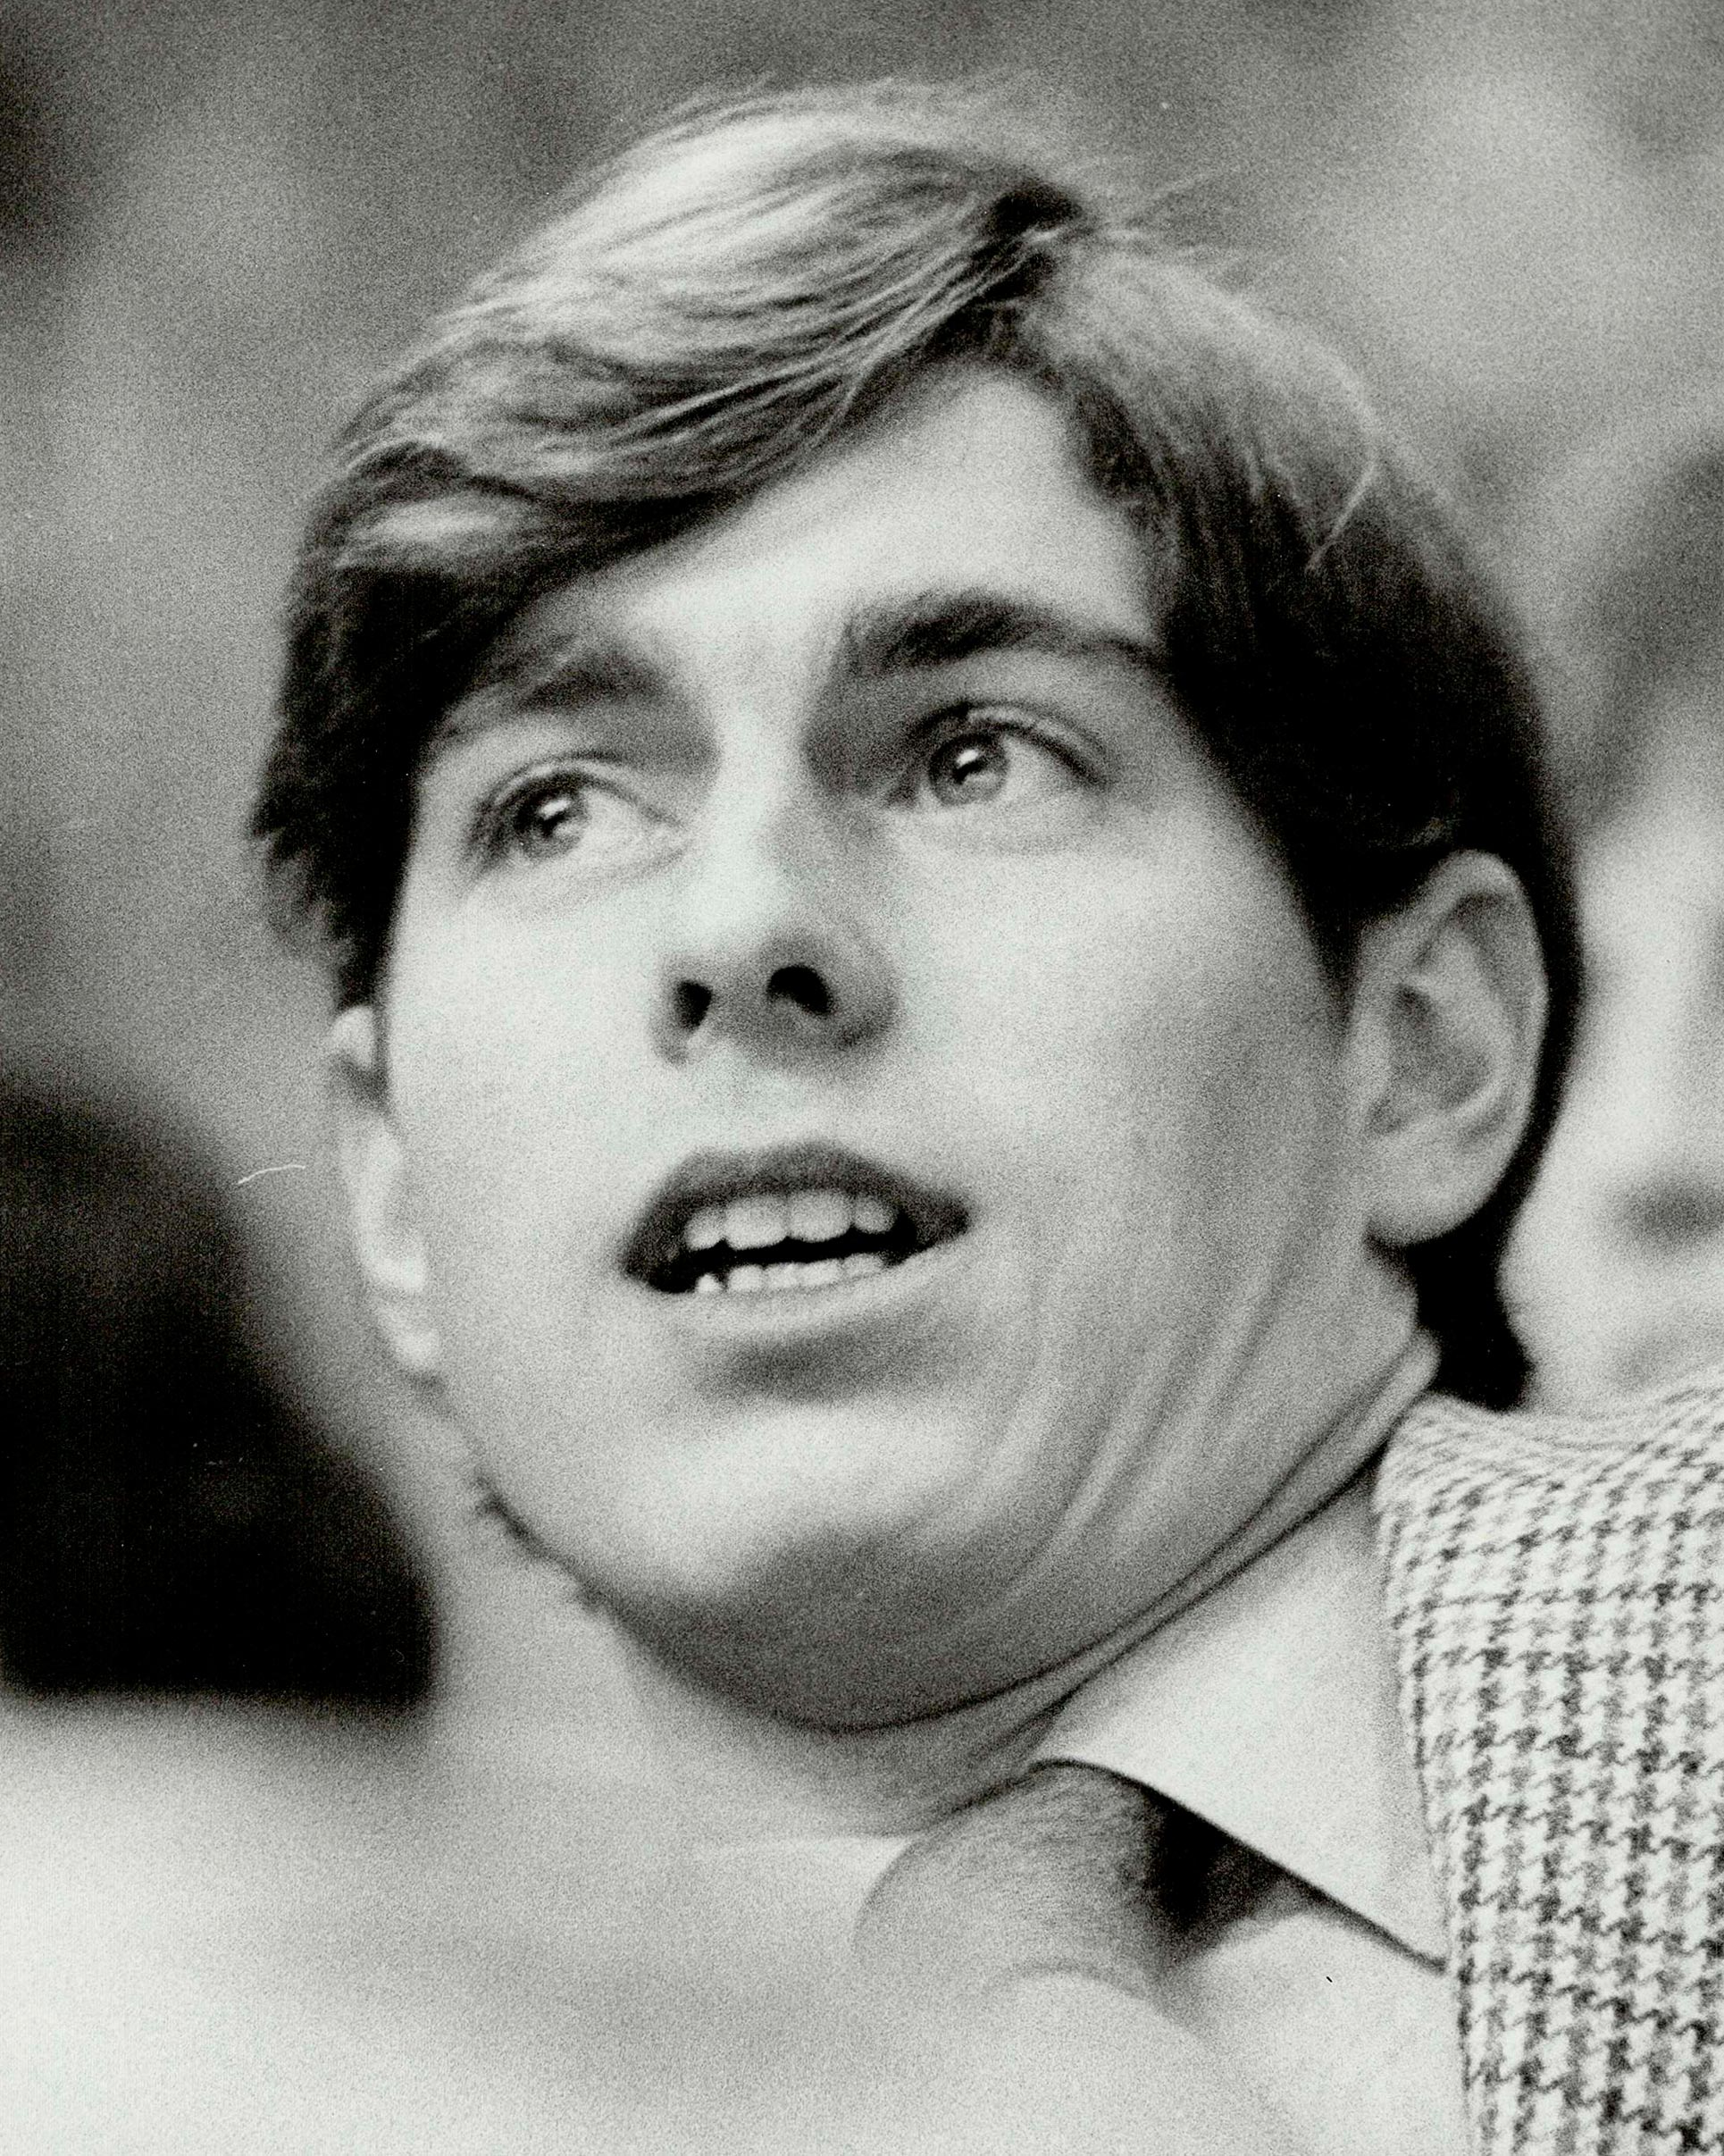 Great Britain - Prince Andrew (1966- 1979)...CANADA - CIRCA 1900: Great Britain - Prince Andrew (1966- 1979) (Photo by Jeff Goode/Toronto Star via Getty Images)